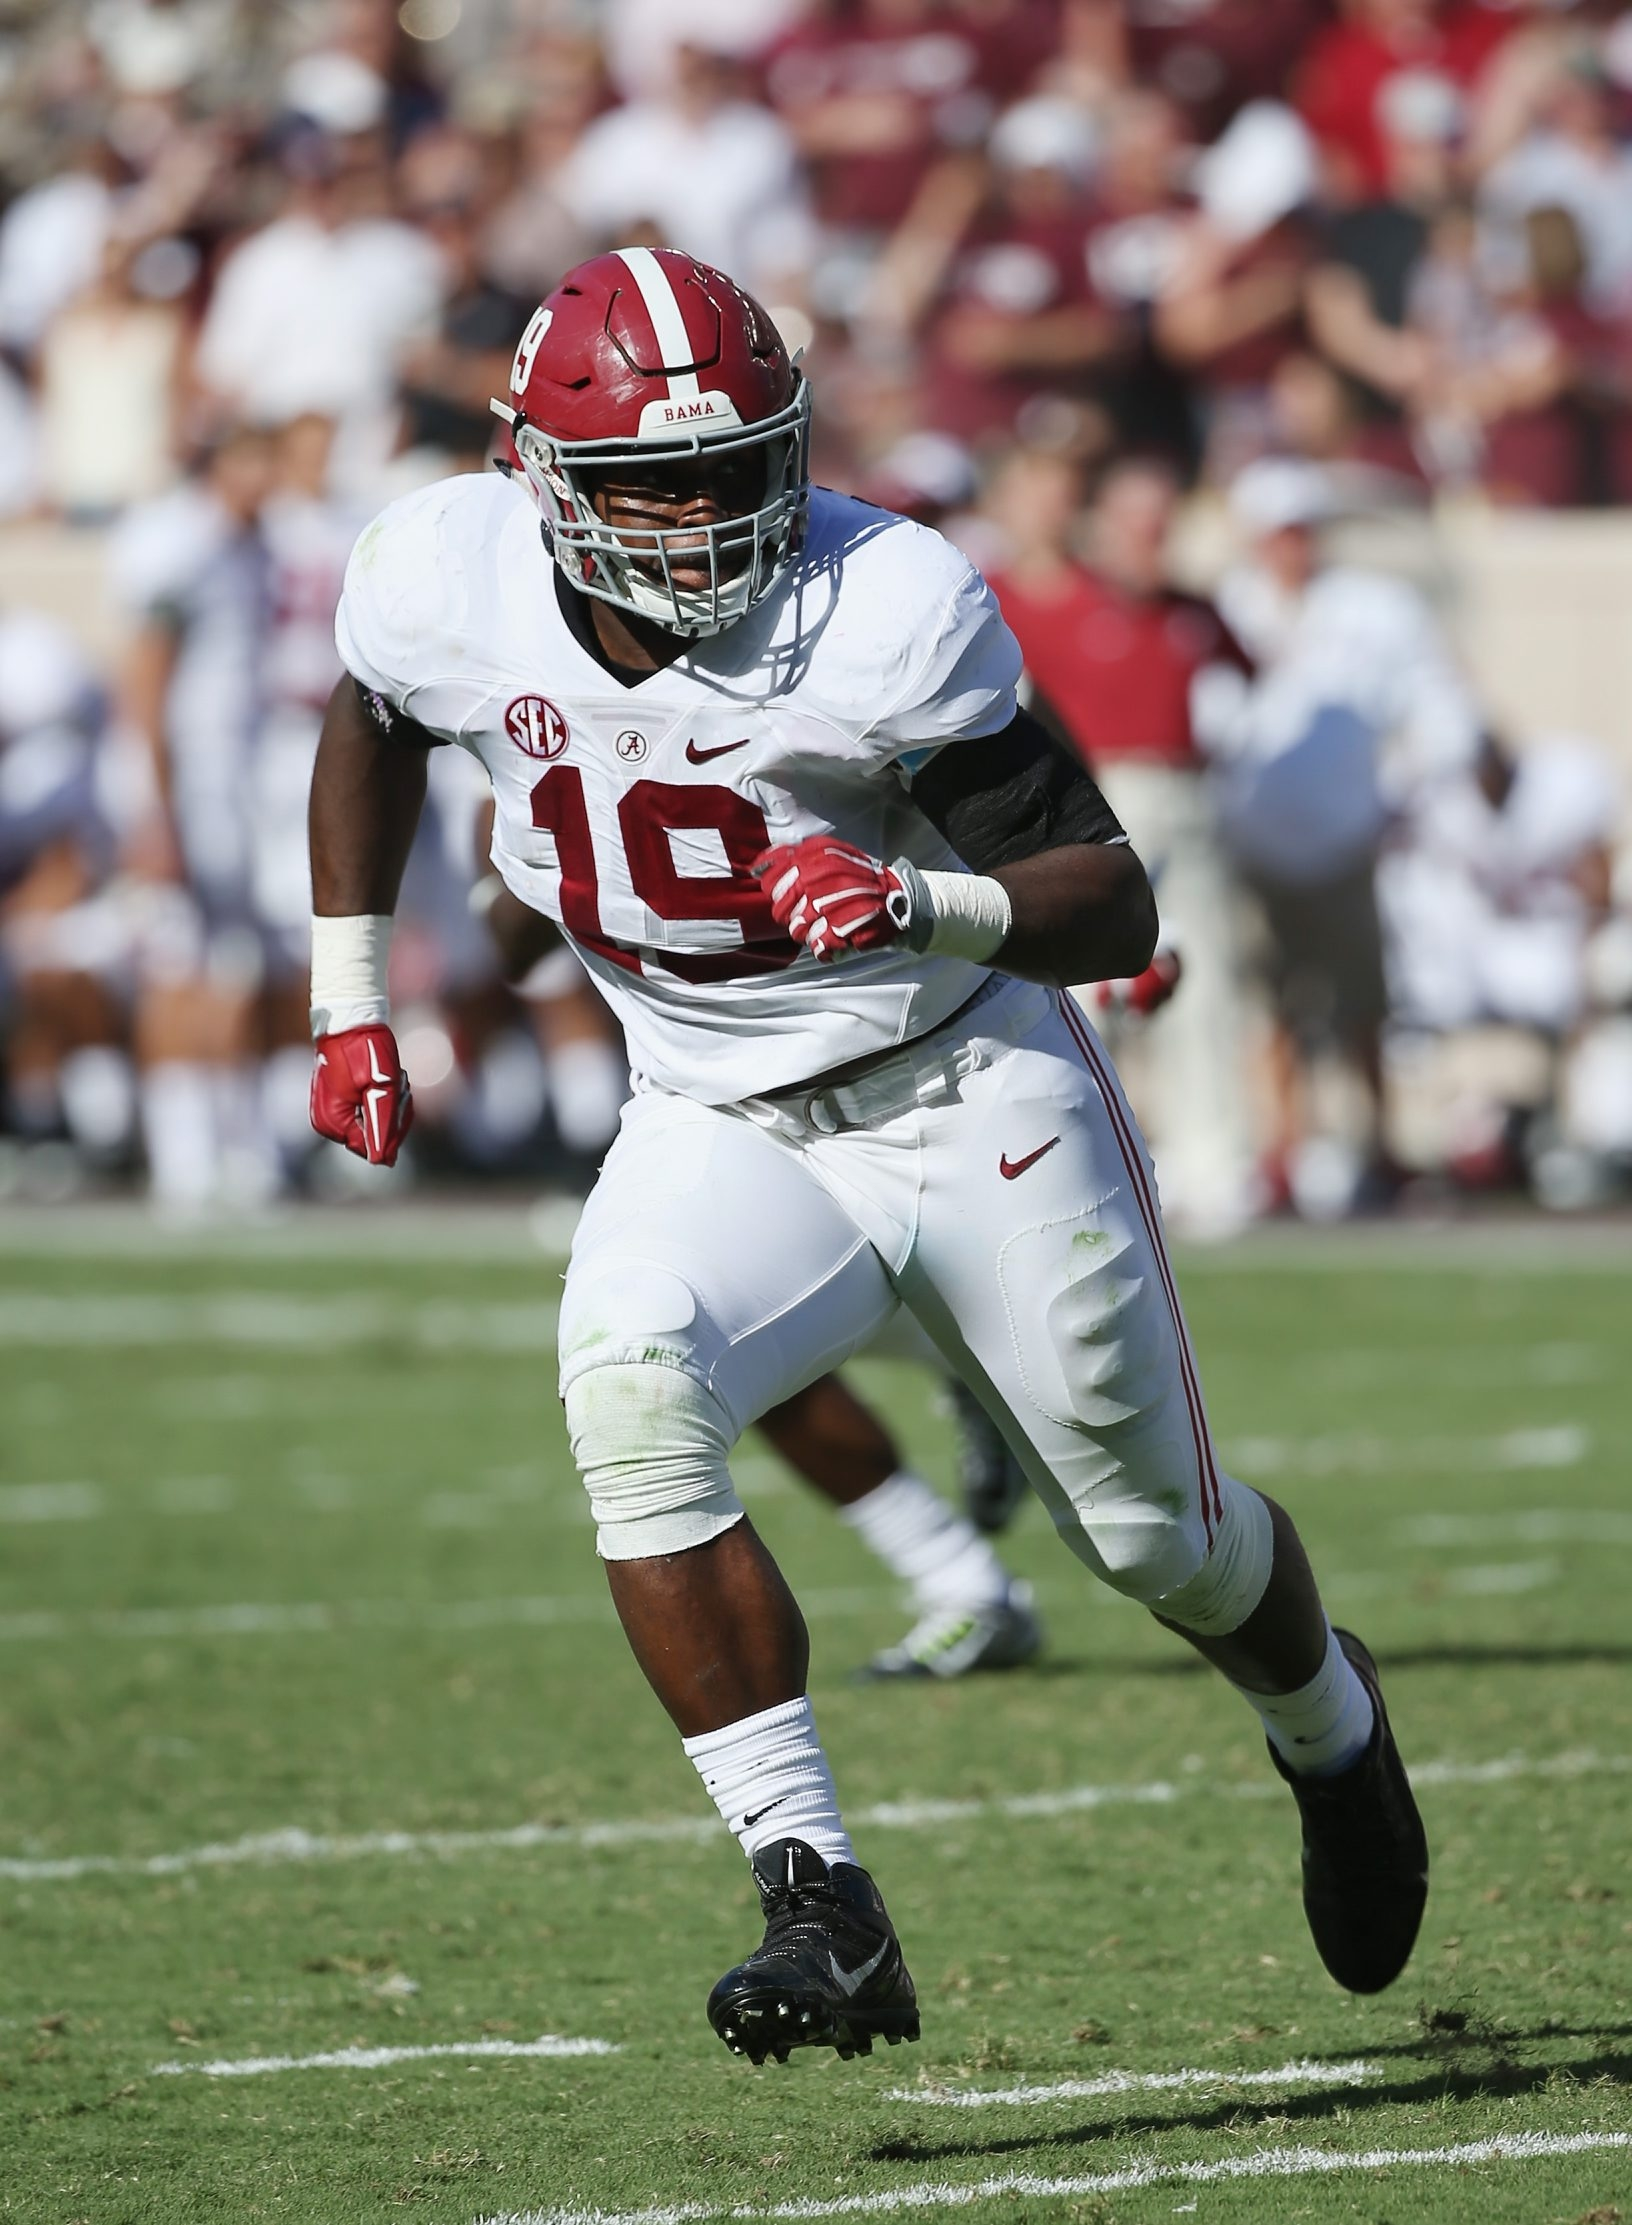 Reggie Ragland, a linebacker with the Alabama Crimson Tide is projected to be selected in the first round of the NFL Draft.